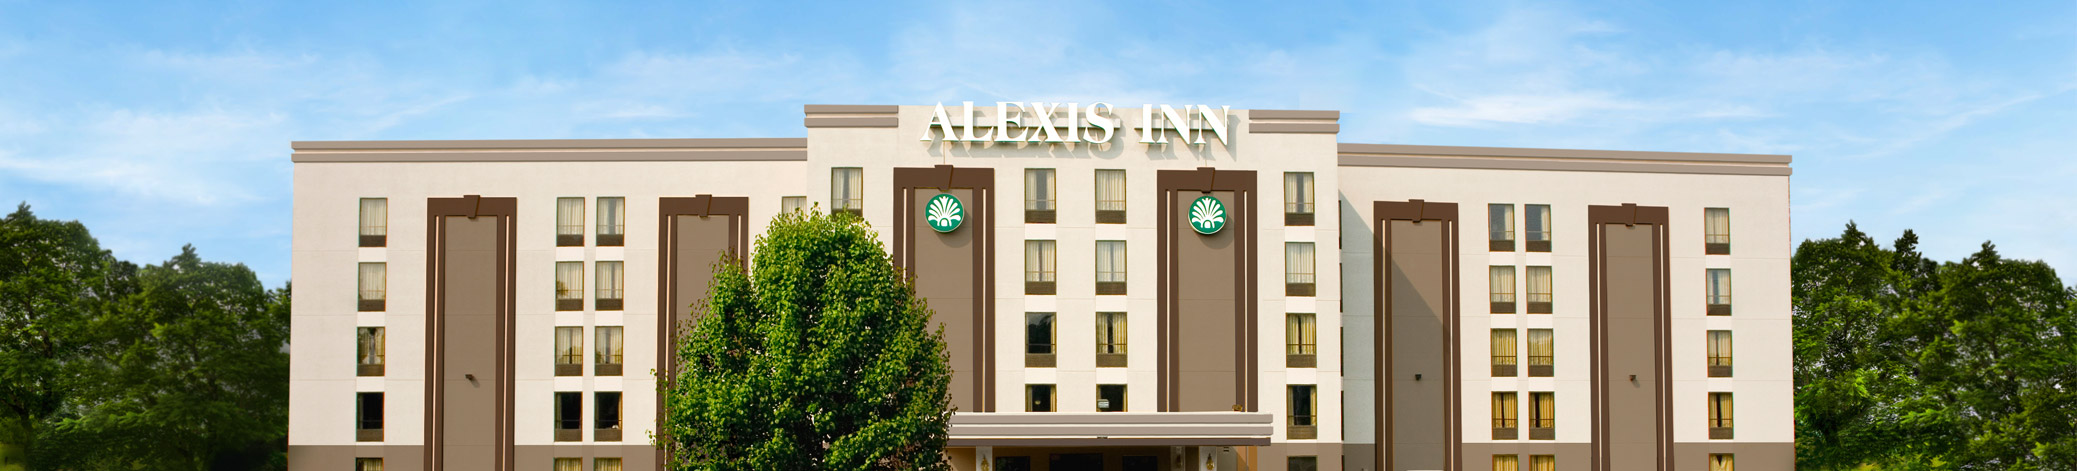 Hotel building with Alexis Inn sign